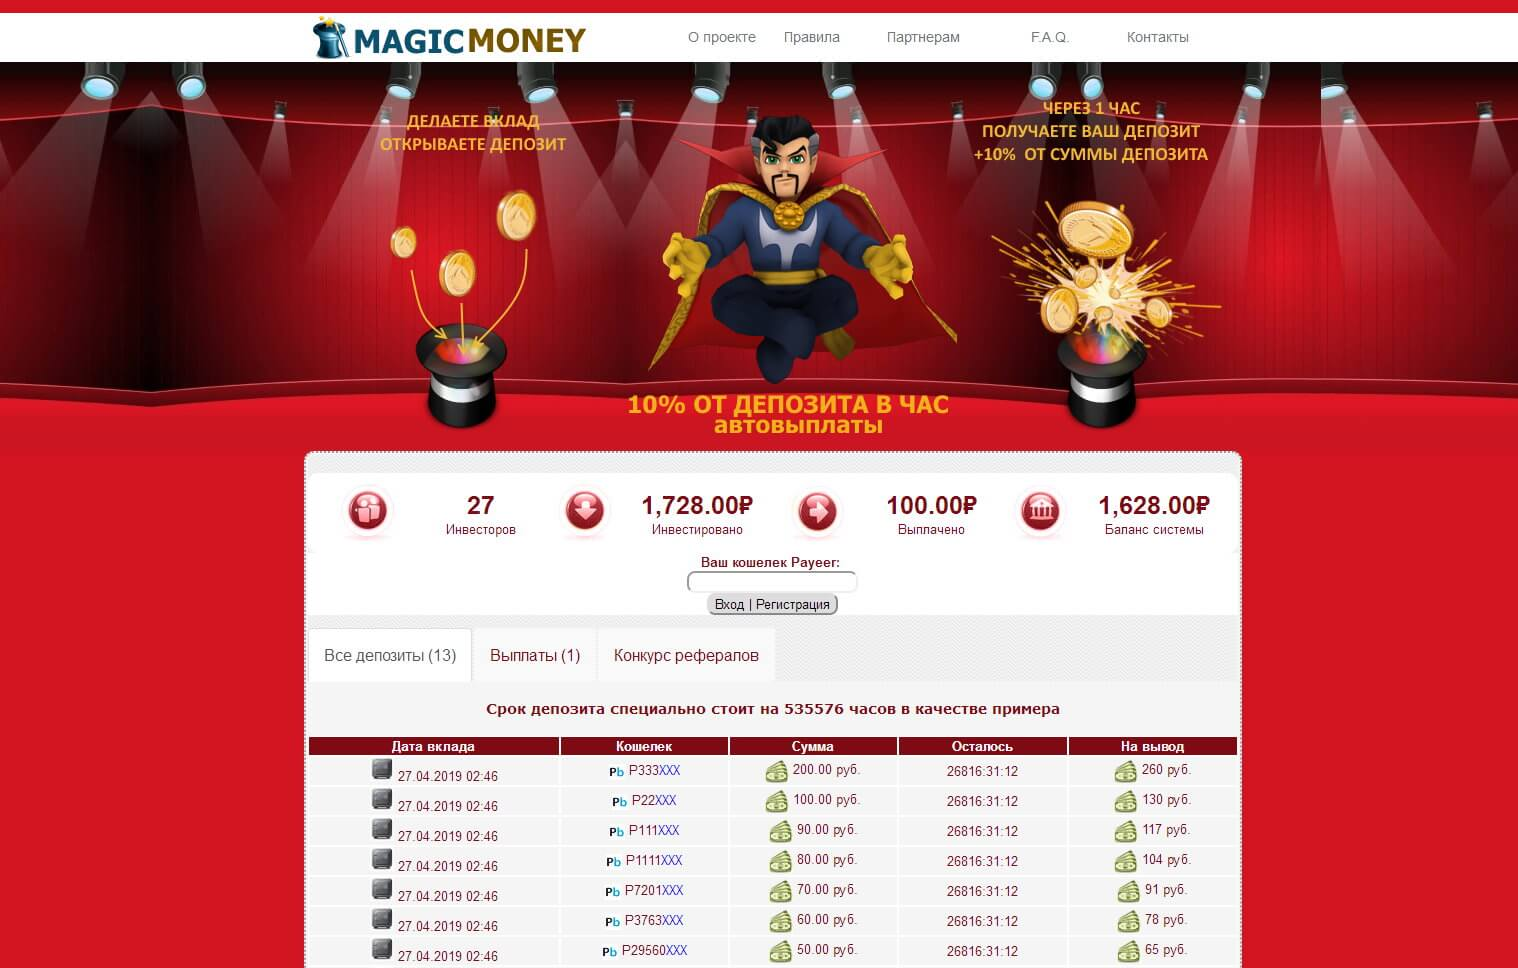 http://php-market.ru/data/big/magicmoney.jpg